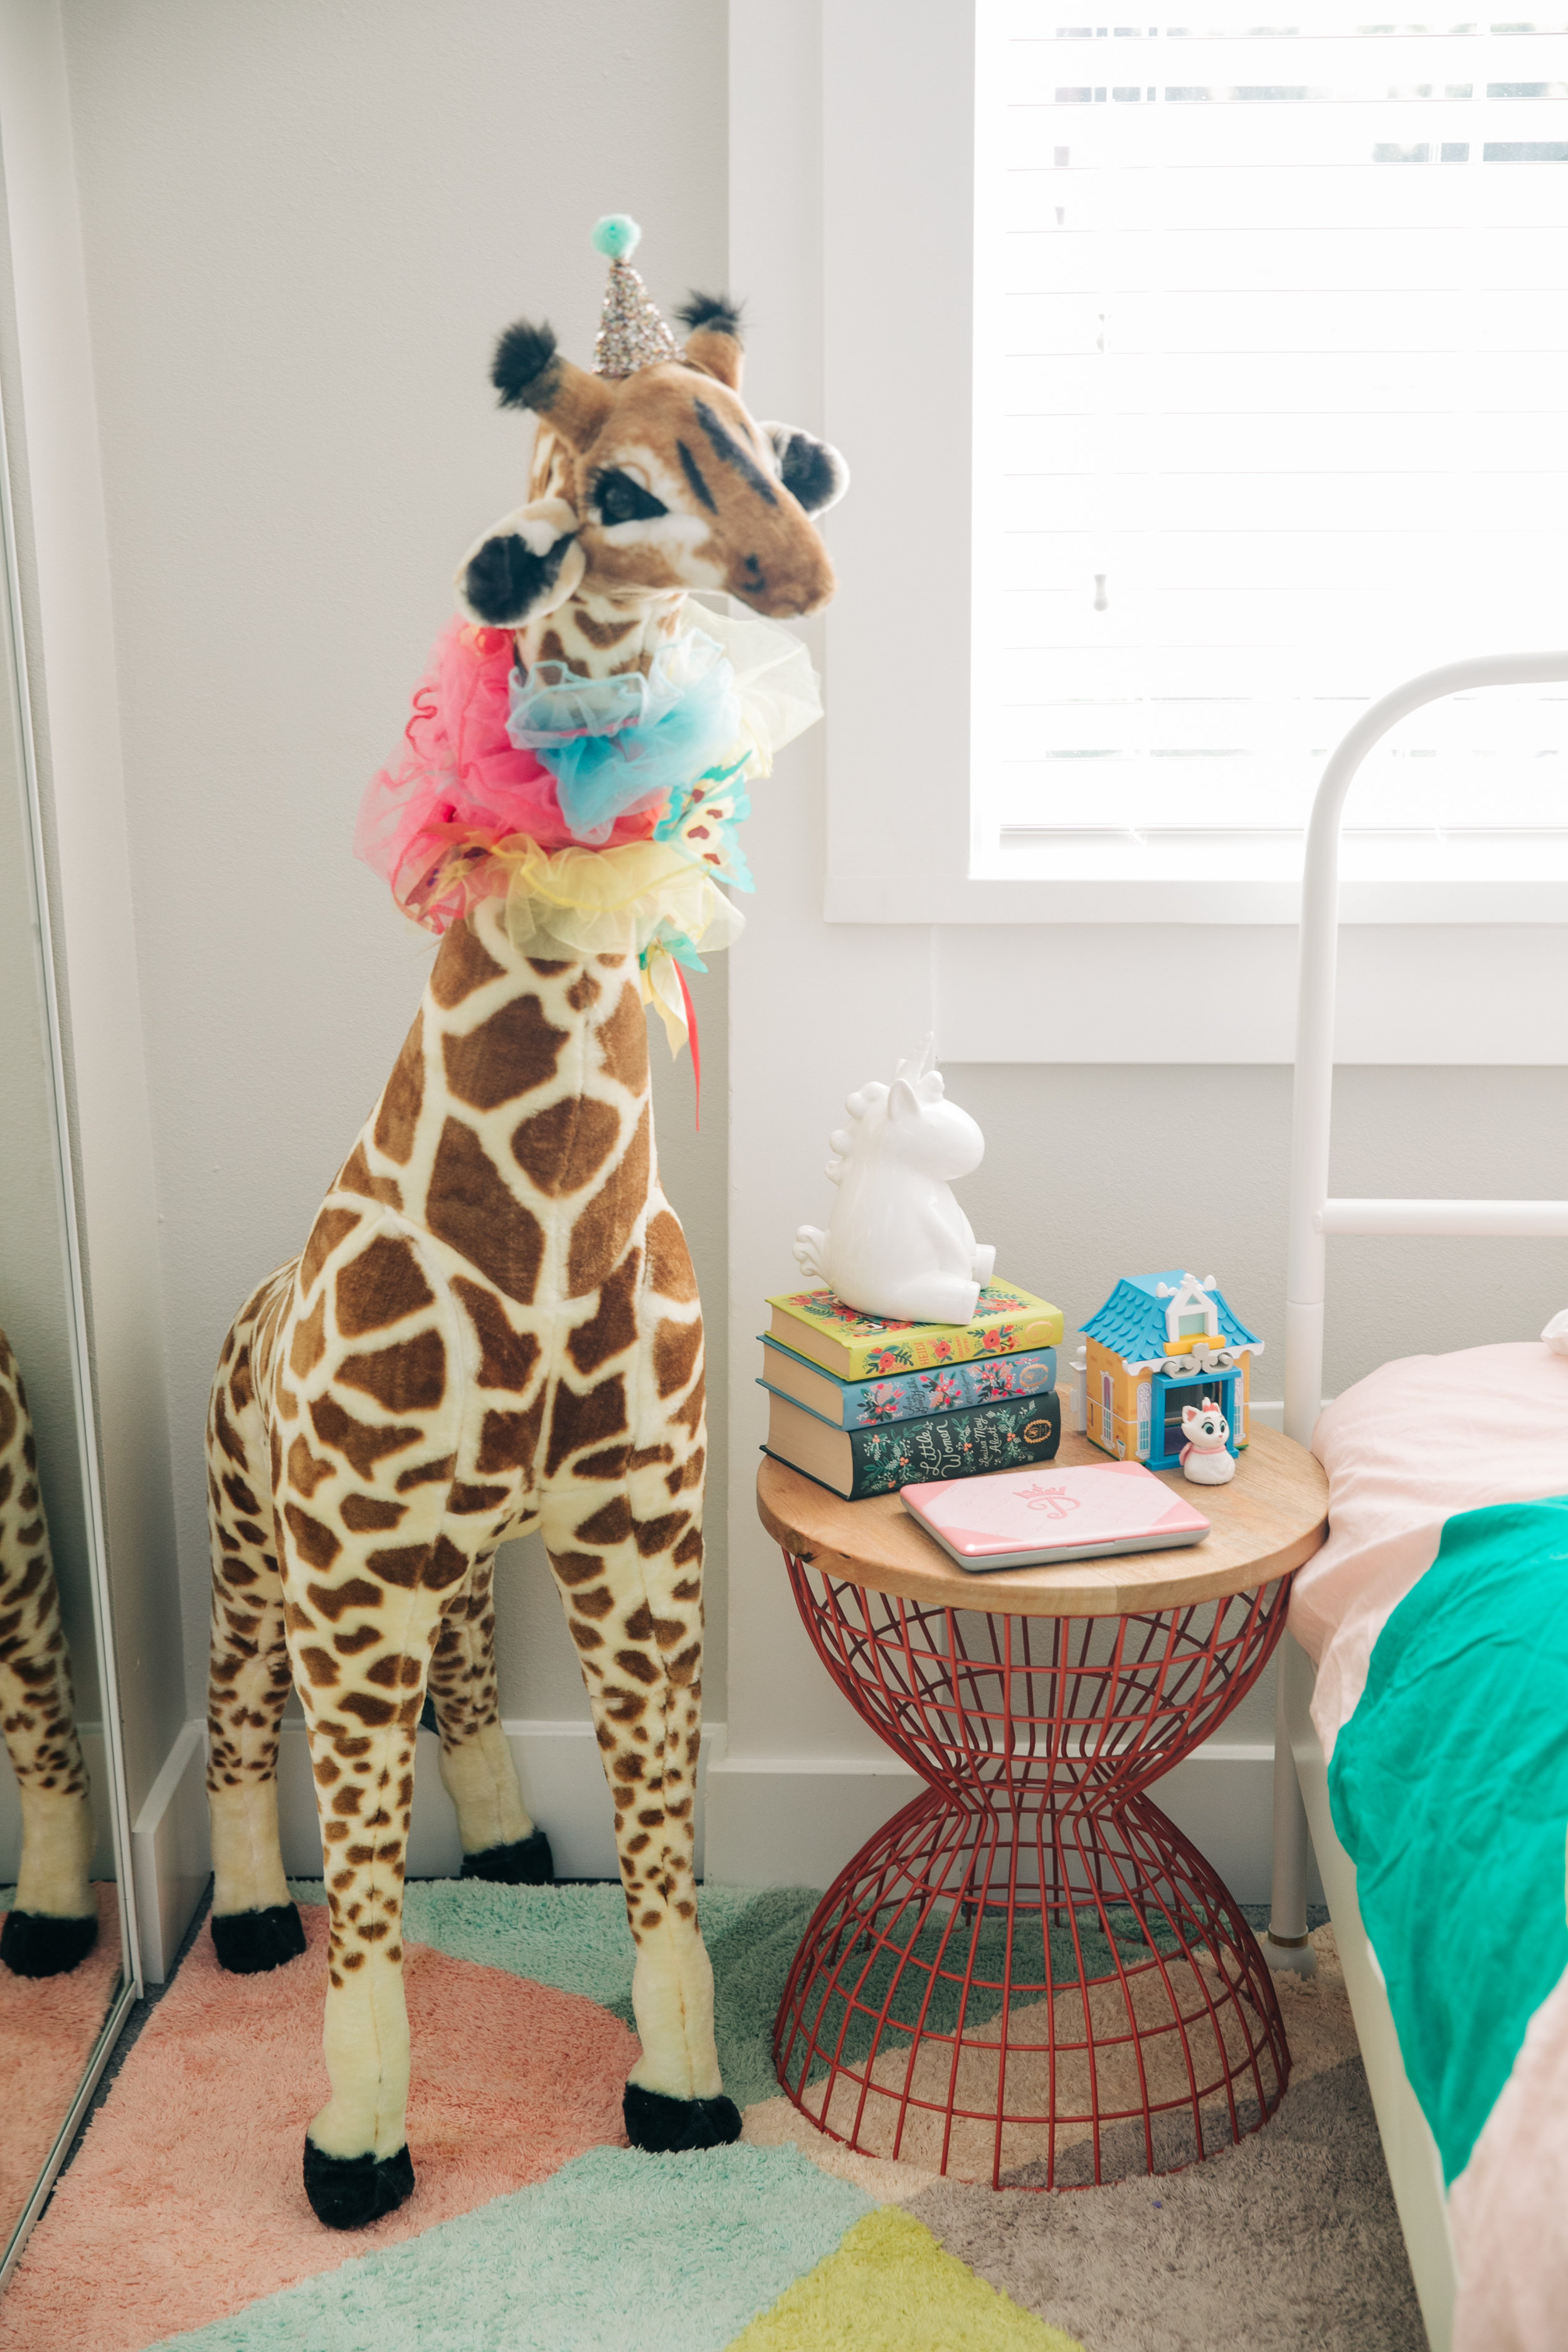 """This giant giraffe was a gift from my sister Jessica. Mila loves him and he is constantly getting dressed up. Right now he is looking fierce in a colorful boa and party hat!  On her bedside table rests some classic books we've had since we put together her nursery. A unicorn bank from Target and her """"laptop"""". Plus a little Disney cat toy Mila's Aunt bought for her. Mila loves keeping her special things in special places. That is one thing about her that I admire, she keeps her toys in specific places and they all have a home. (Unless they are being played with, then they are any and everywhere)"""